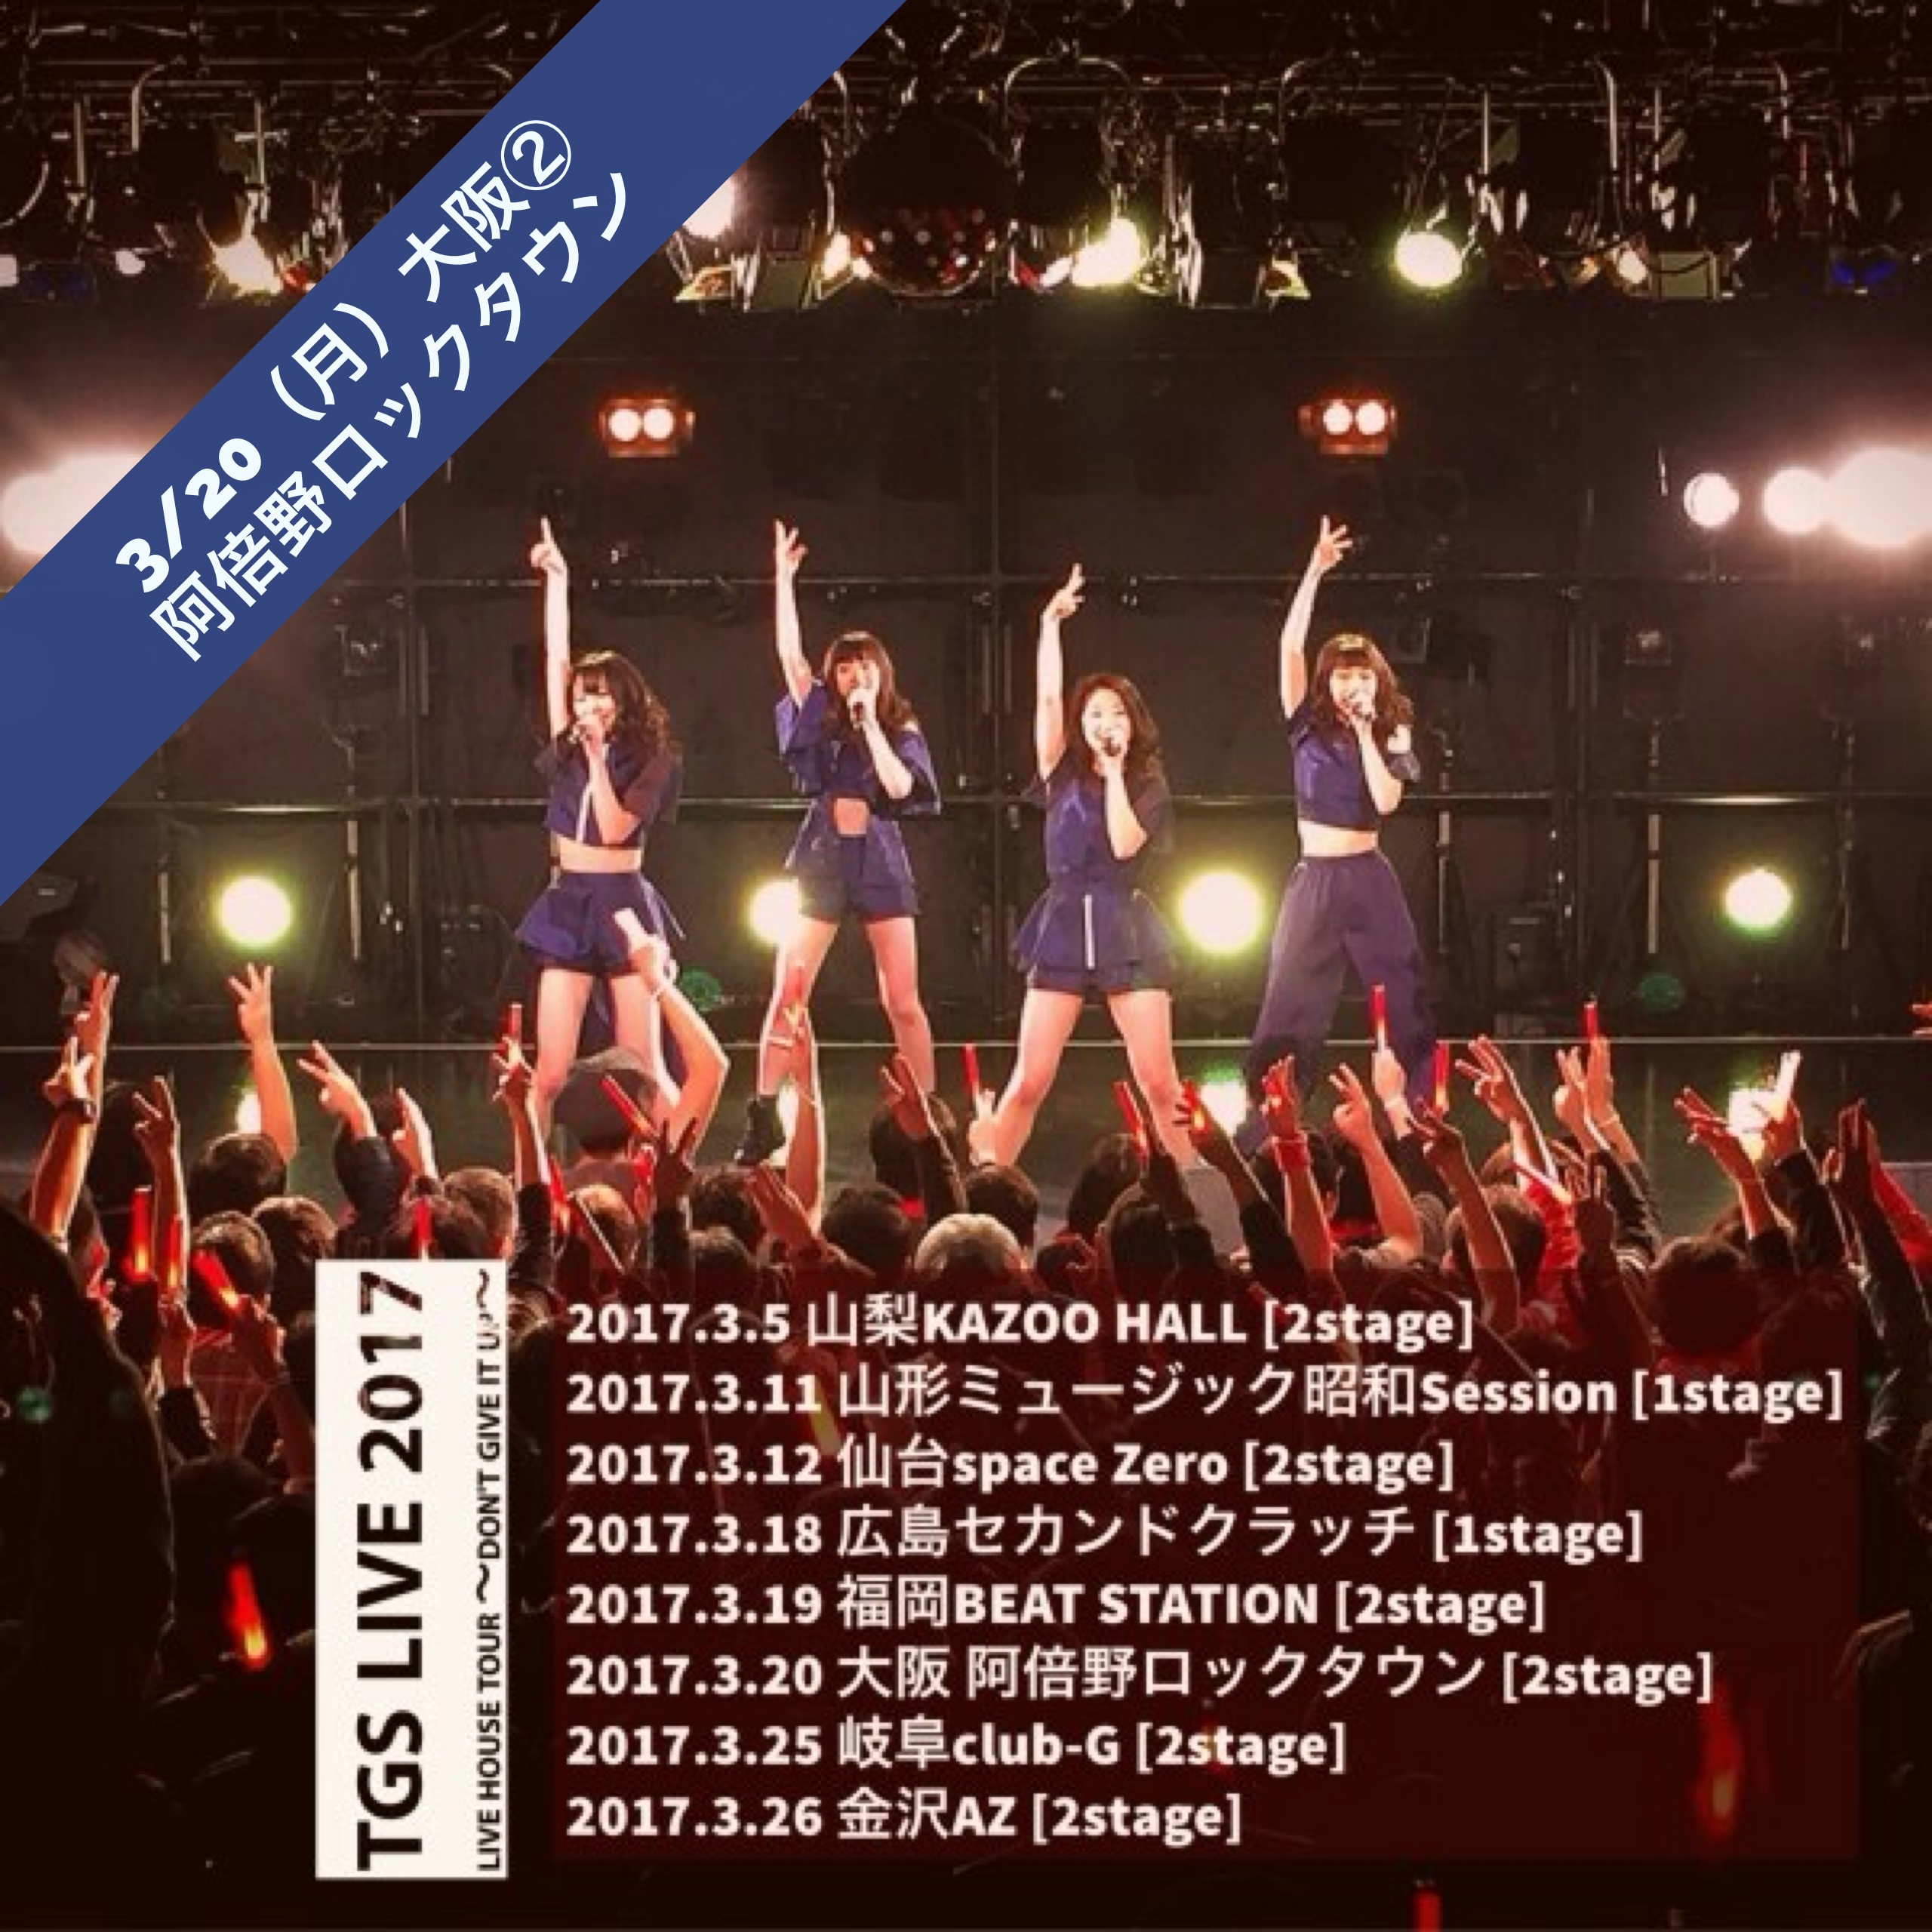 TGS LIVE 2017 LIVE HOUSE TOUR 〜Don't give it up〜(3/20大阪②17:00公演)